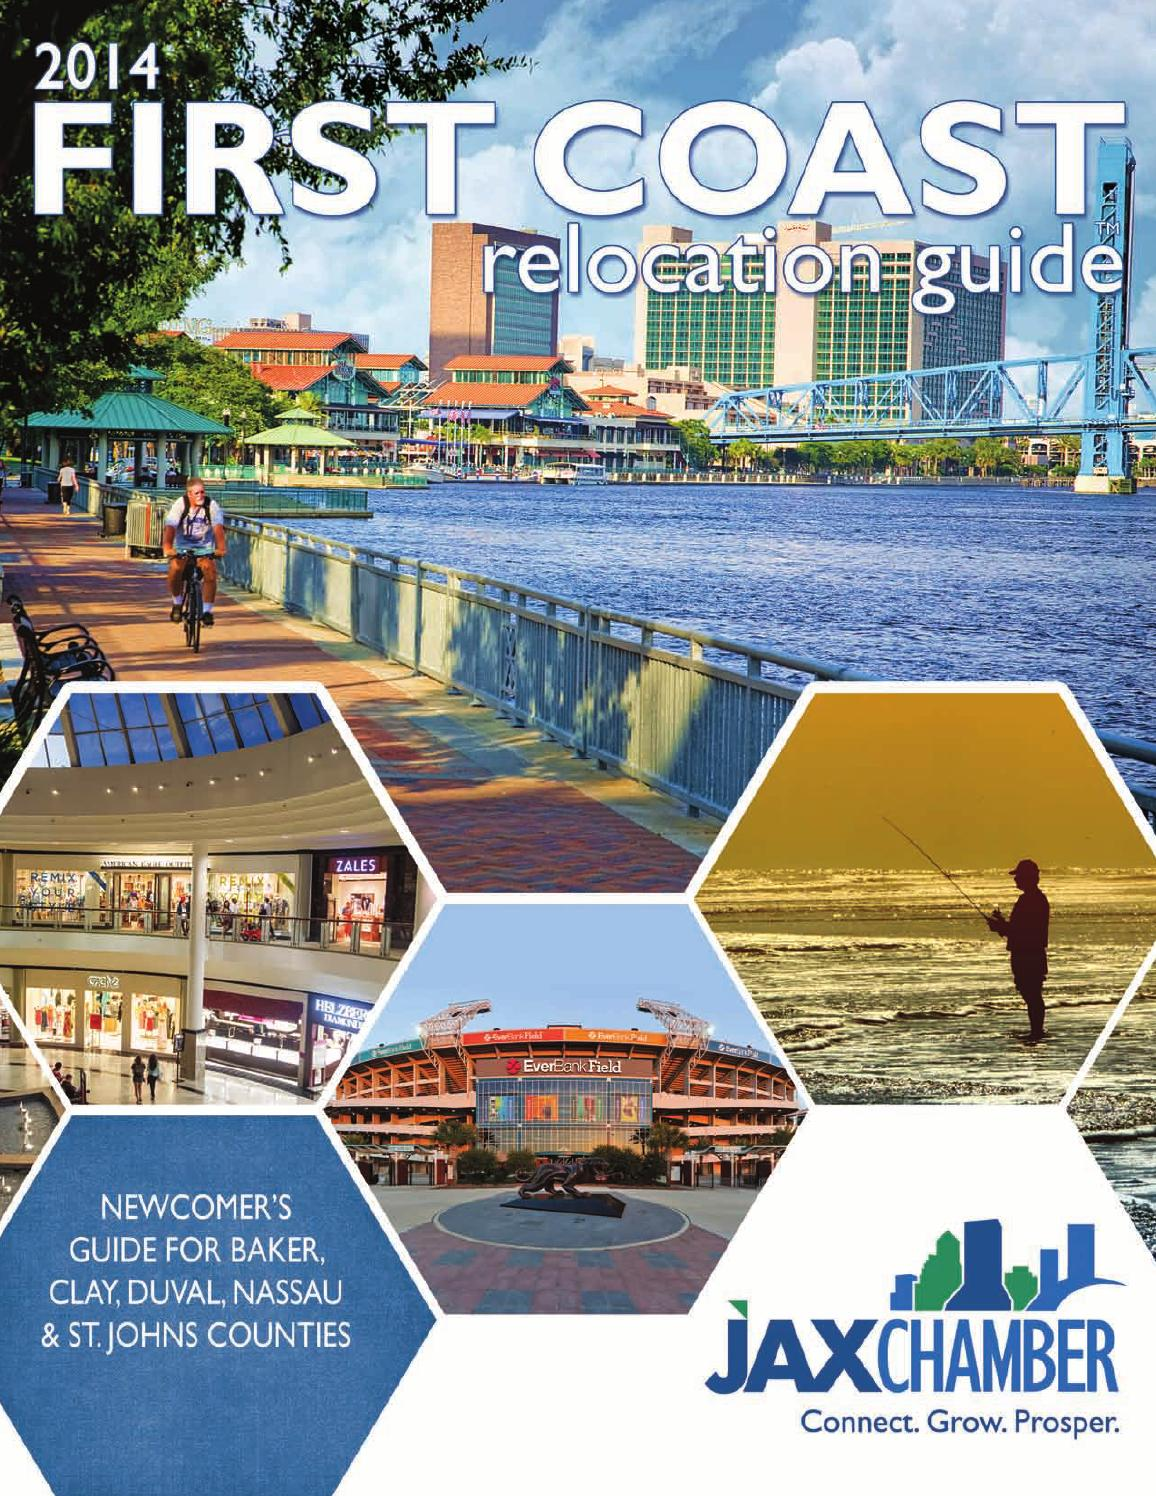 buy online f6839 81485 2014 First Coast Relocation Guide by Heritage Publishing - i